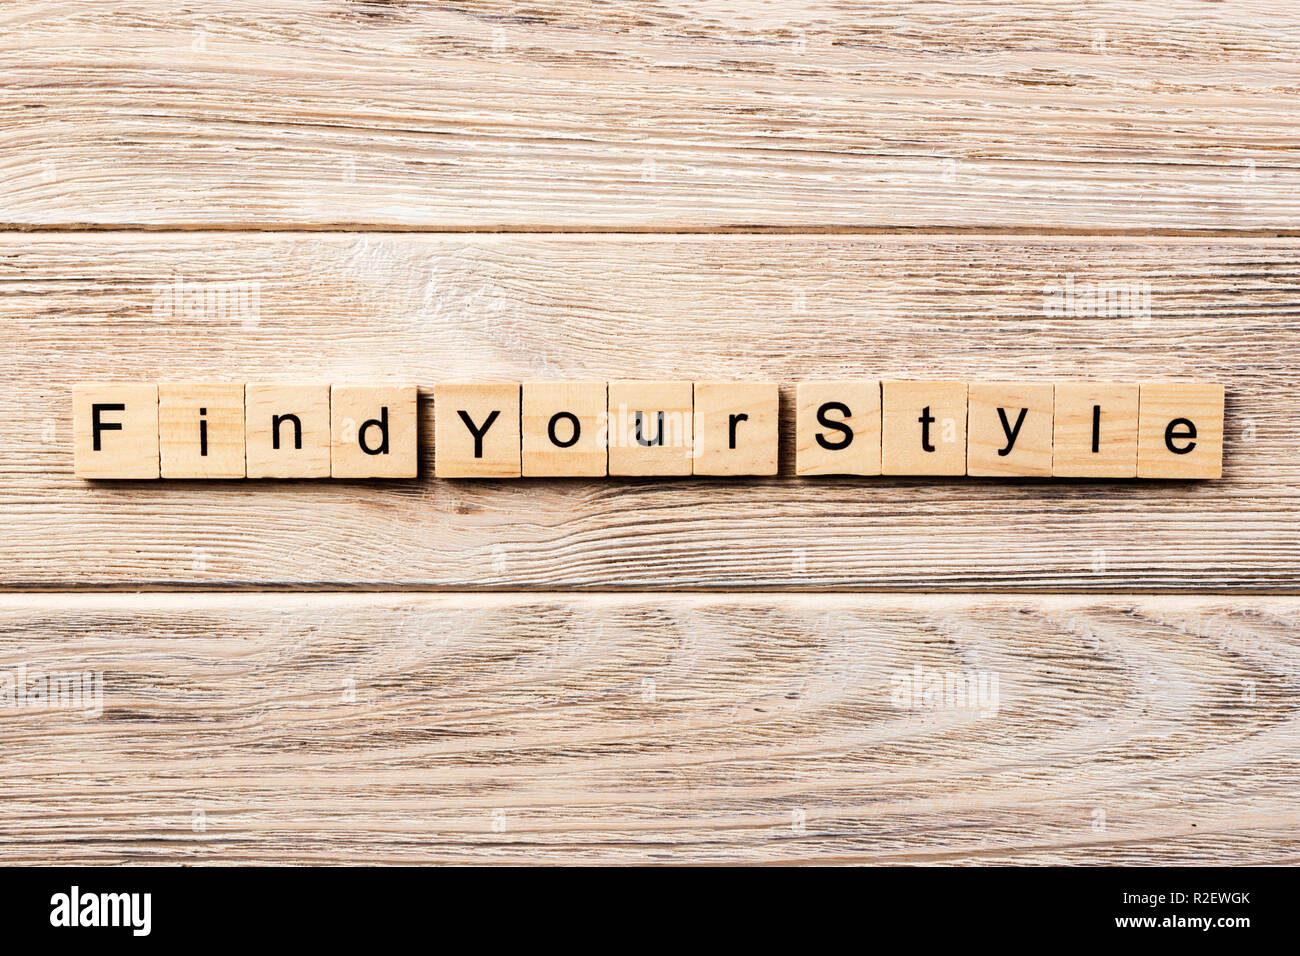 find your style word written on wood block. find your style text on table, concept. - Stock Image